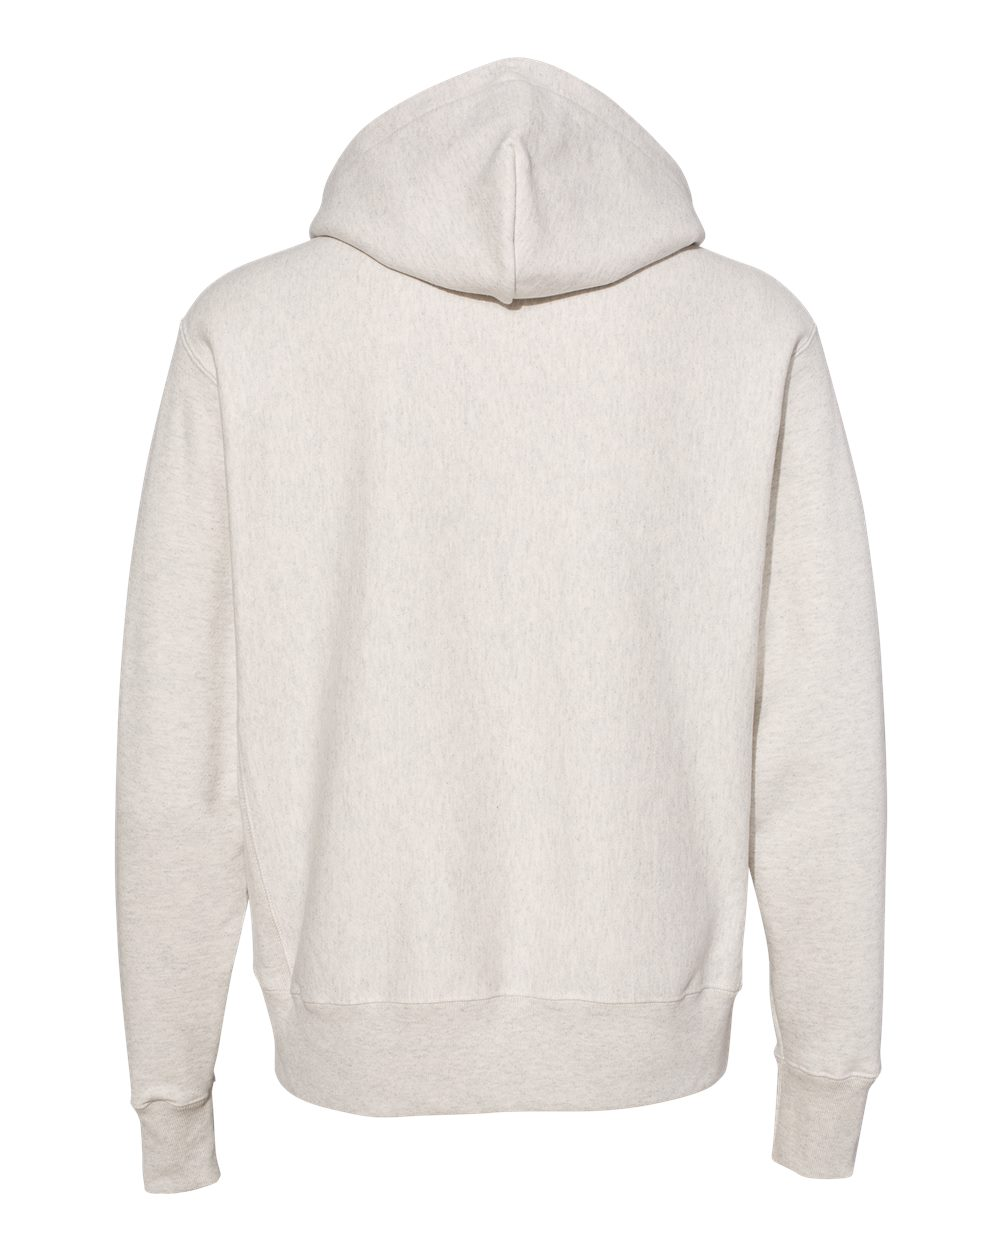 Champion-Mens-Reverse-Weave-Hooded-Pullover-Sweatshirt-S101-up-to-3XL thumbnail 34